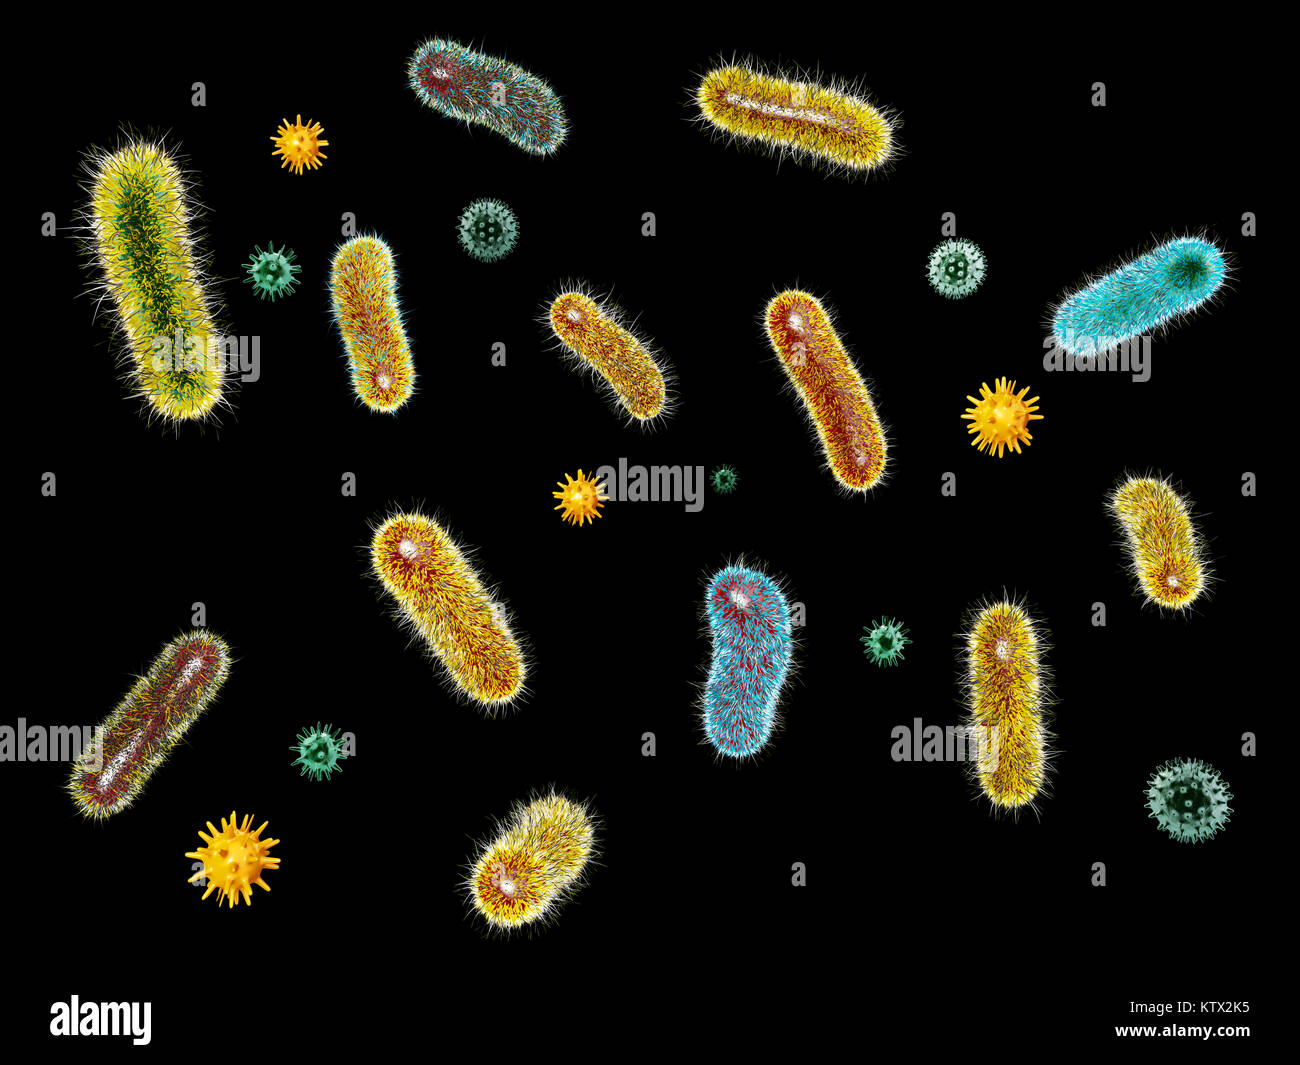 3d Illustration of Virus bacteria. Microorganisms and bacillus. - Stock Image